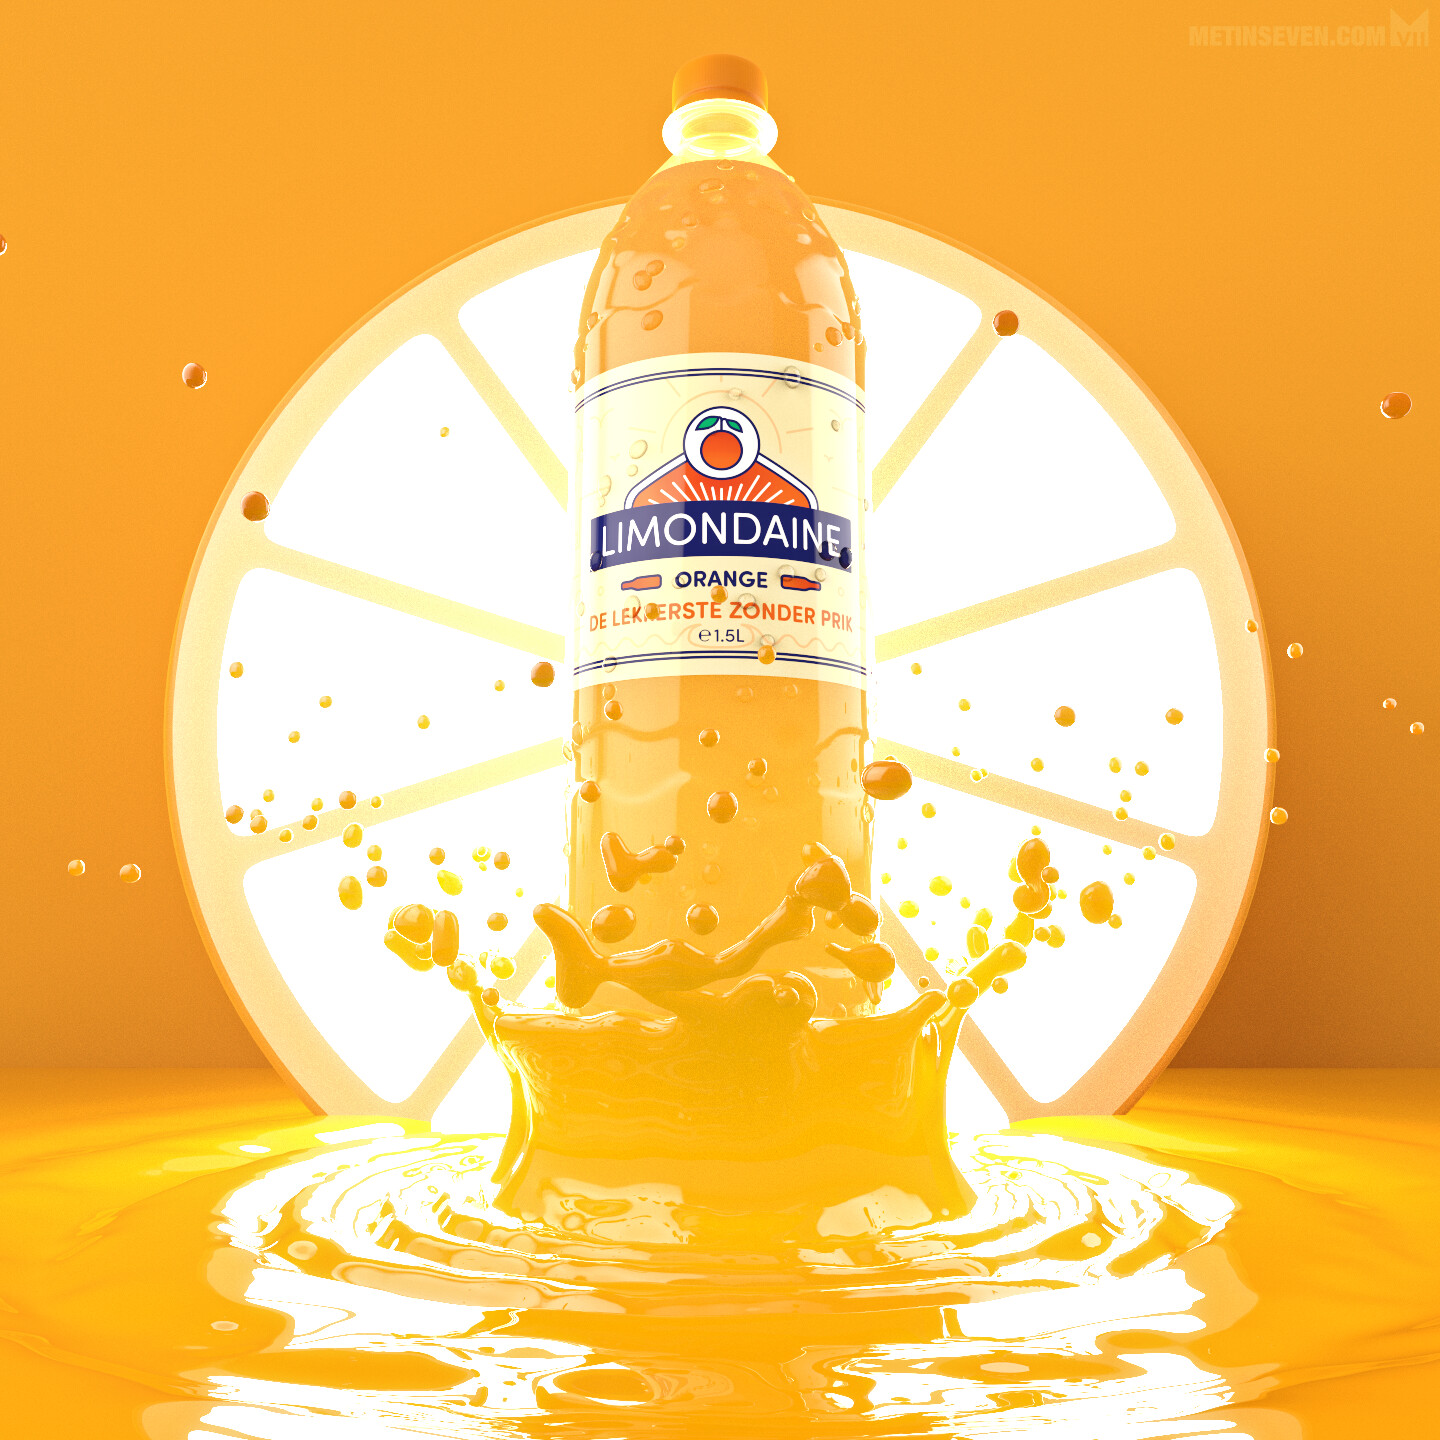 3D presentation concept for a Limondaine soft drink promotion campaign